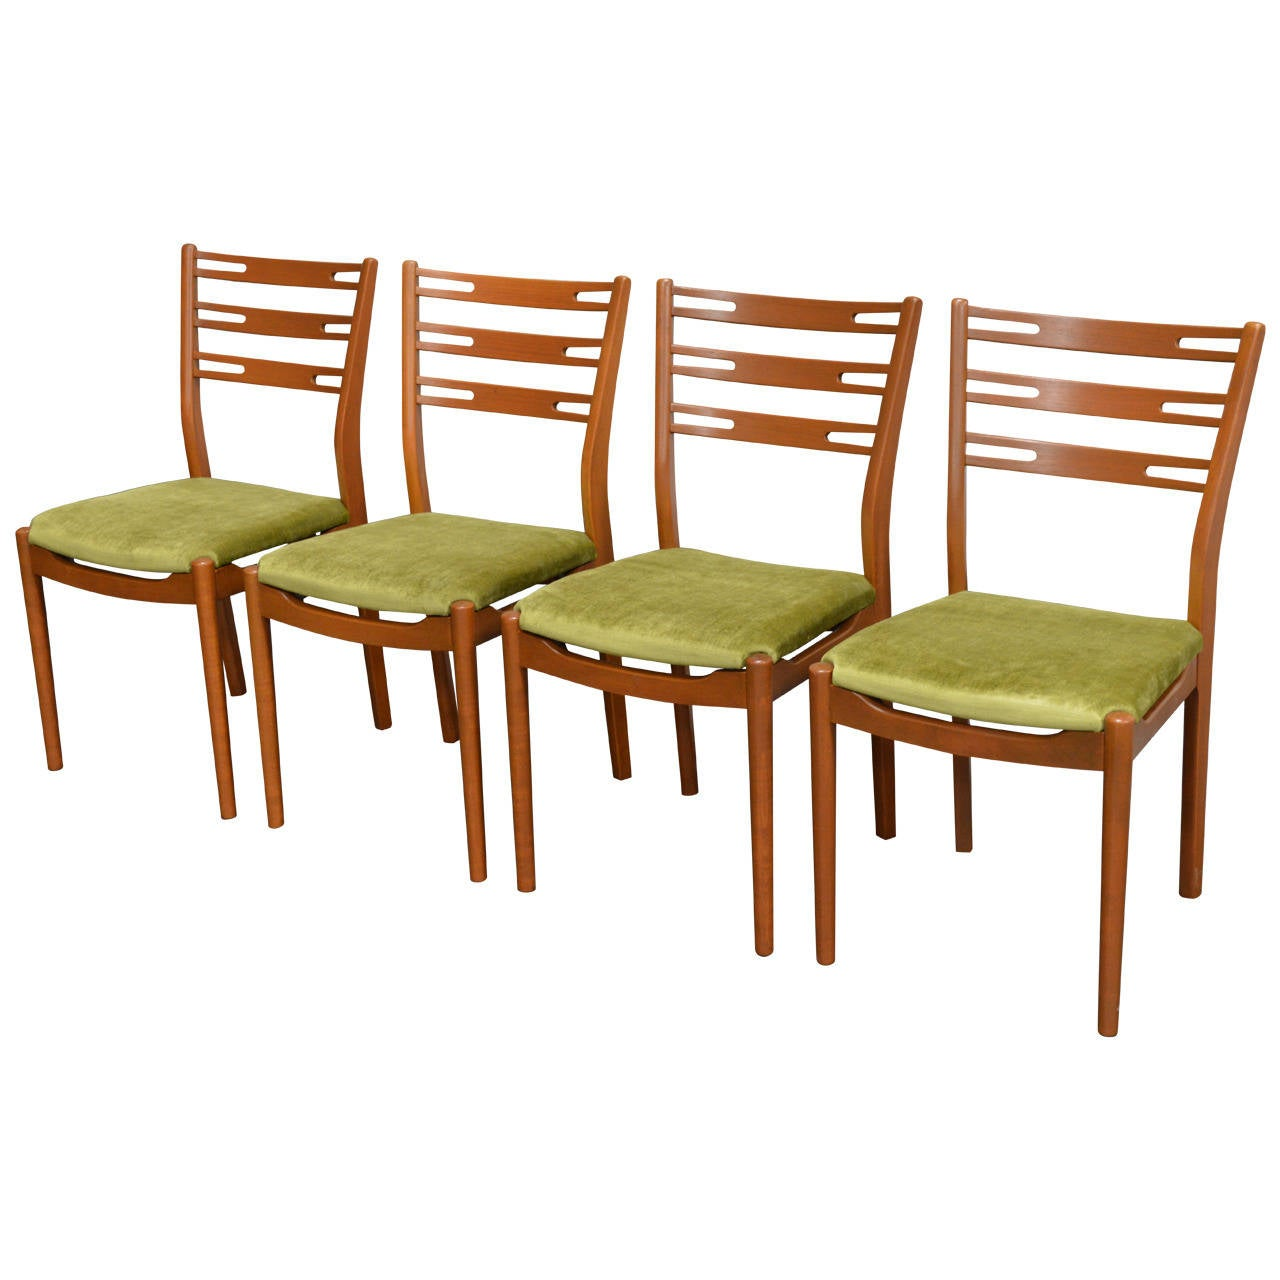 set of four swedish midcentury modern teak dining chairs at stdibs - set of four swedish midcentury modern teak dining chairs